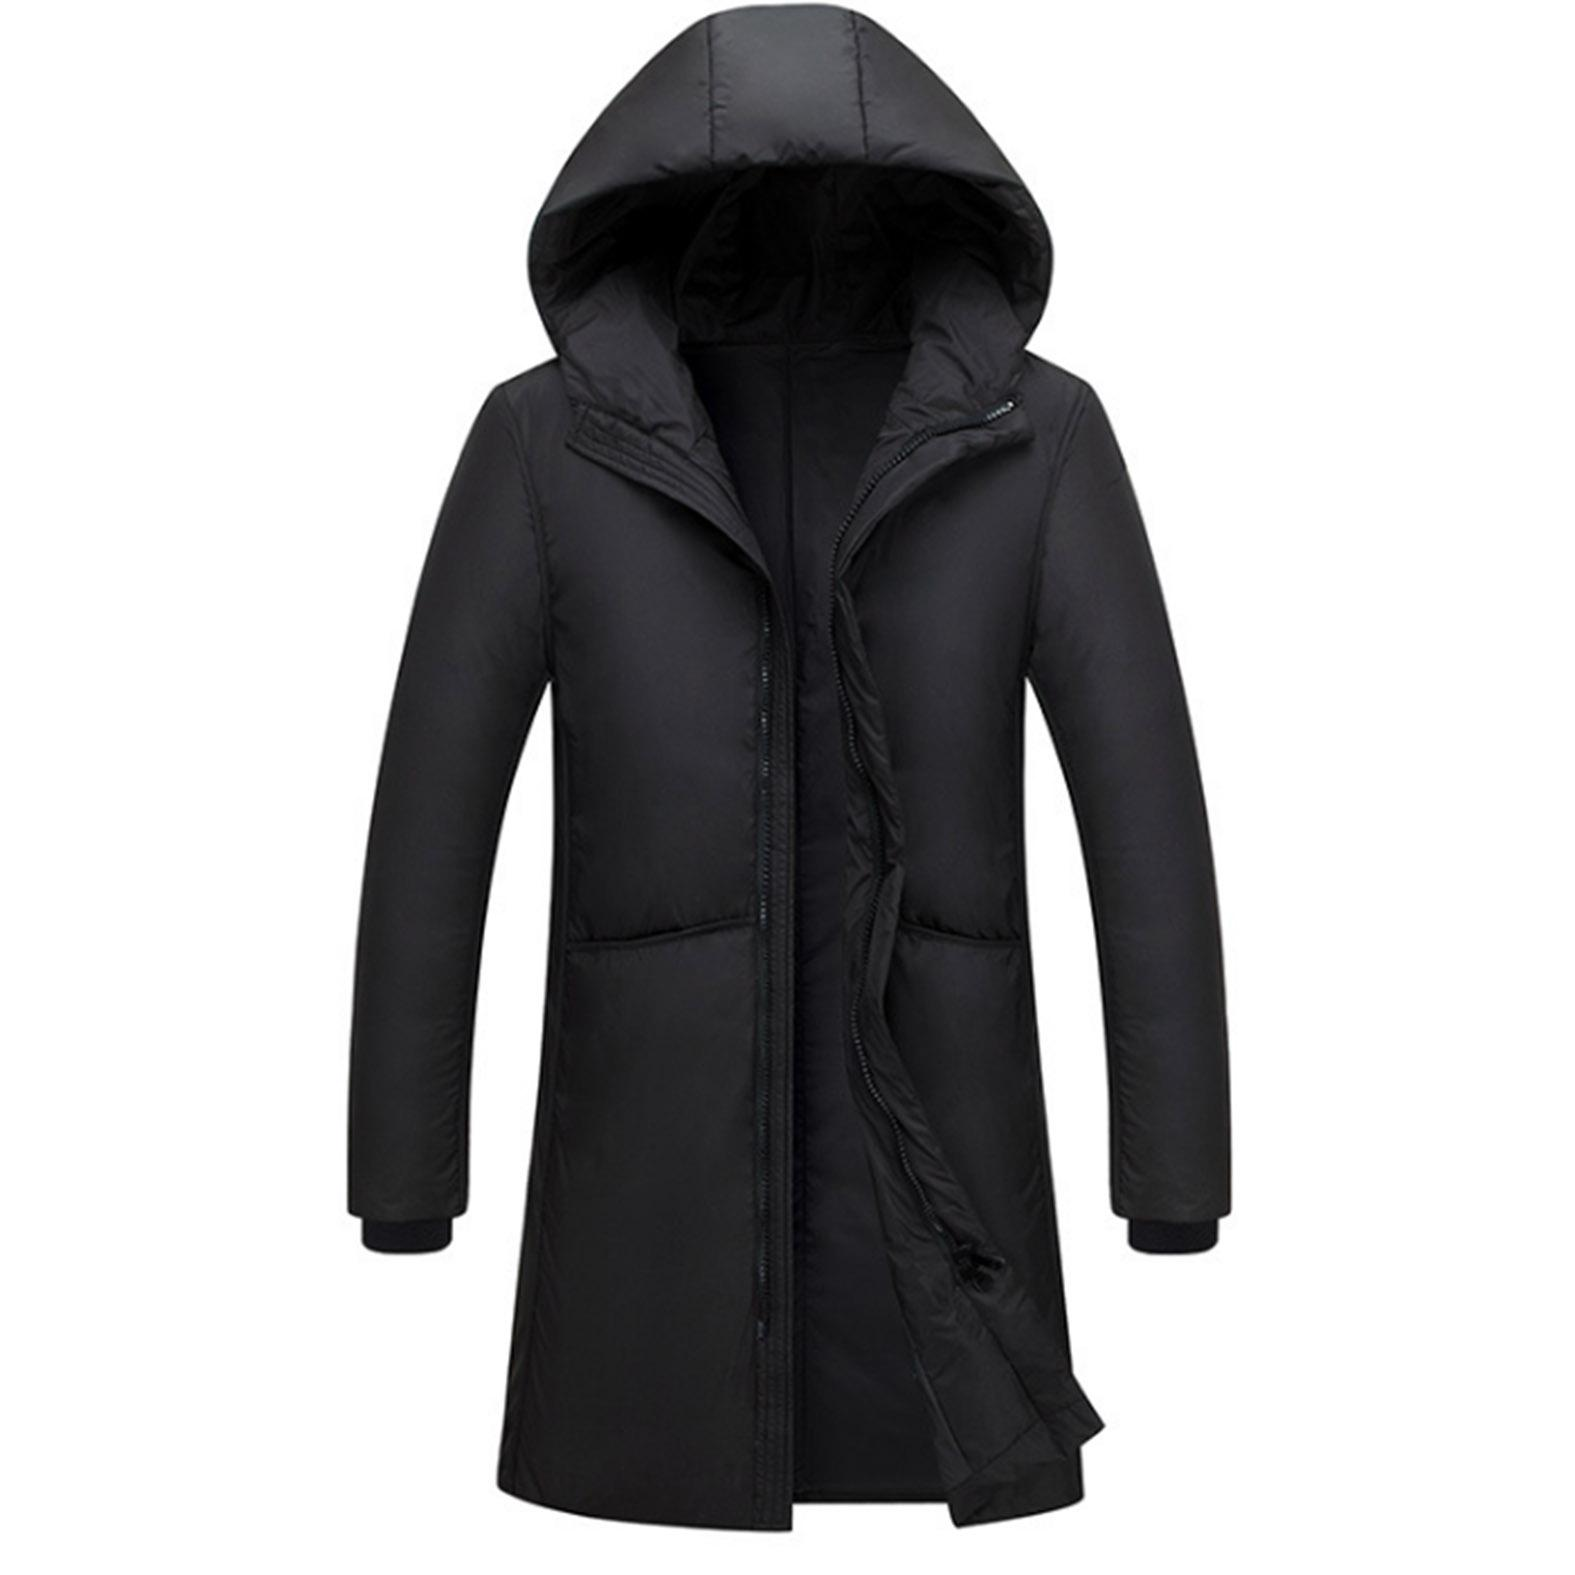 2019 Spring/autumn Mens Hooded Jacket Overcoat Fashion Lightweight Portable With Hat Plus Size 4xl 5xl Male Duck Down Slim Coat Extremely Efficient In Preserving Heat Men's Clothing